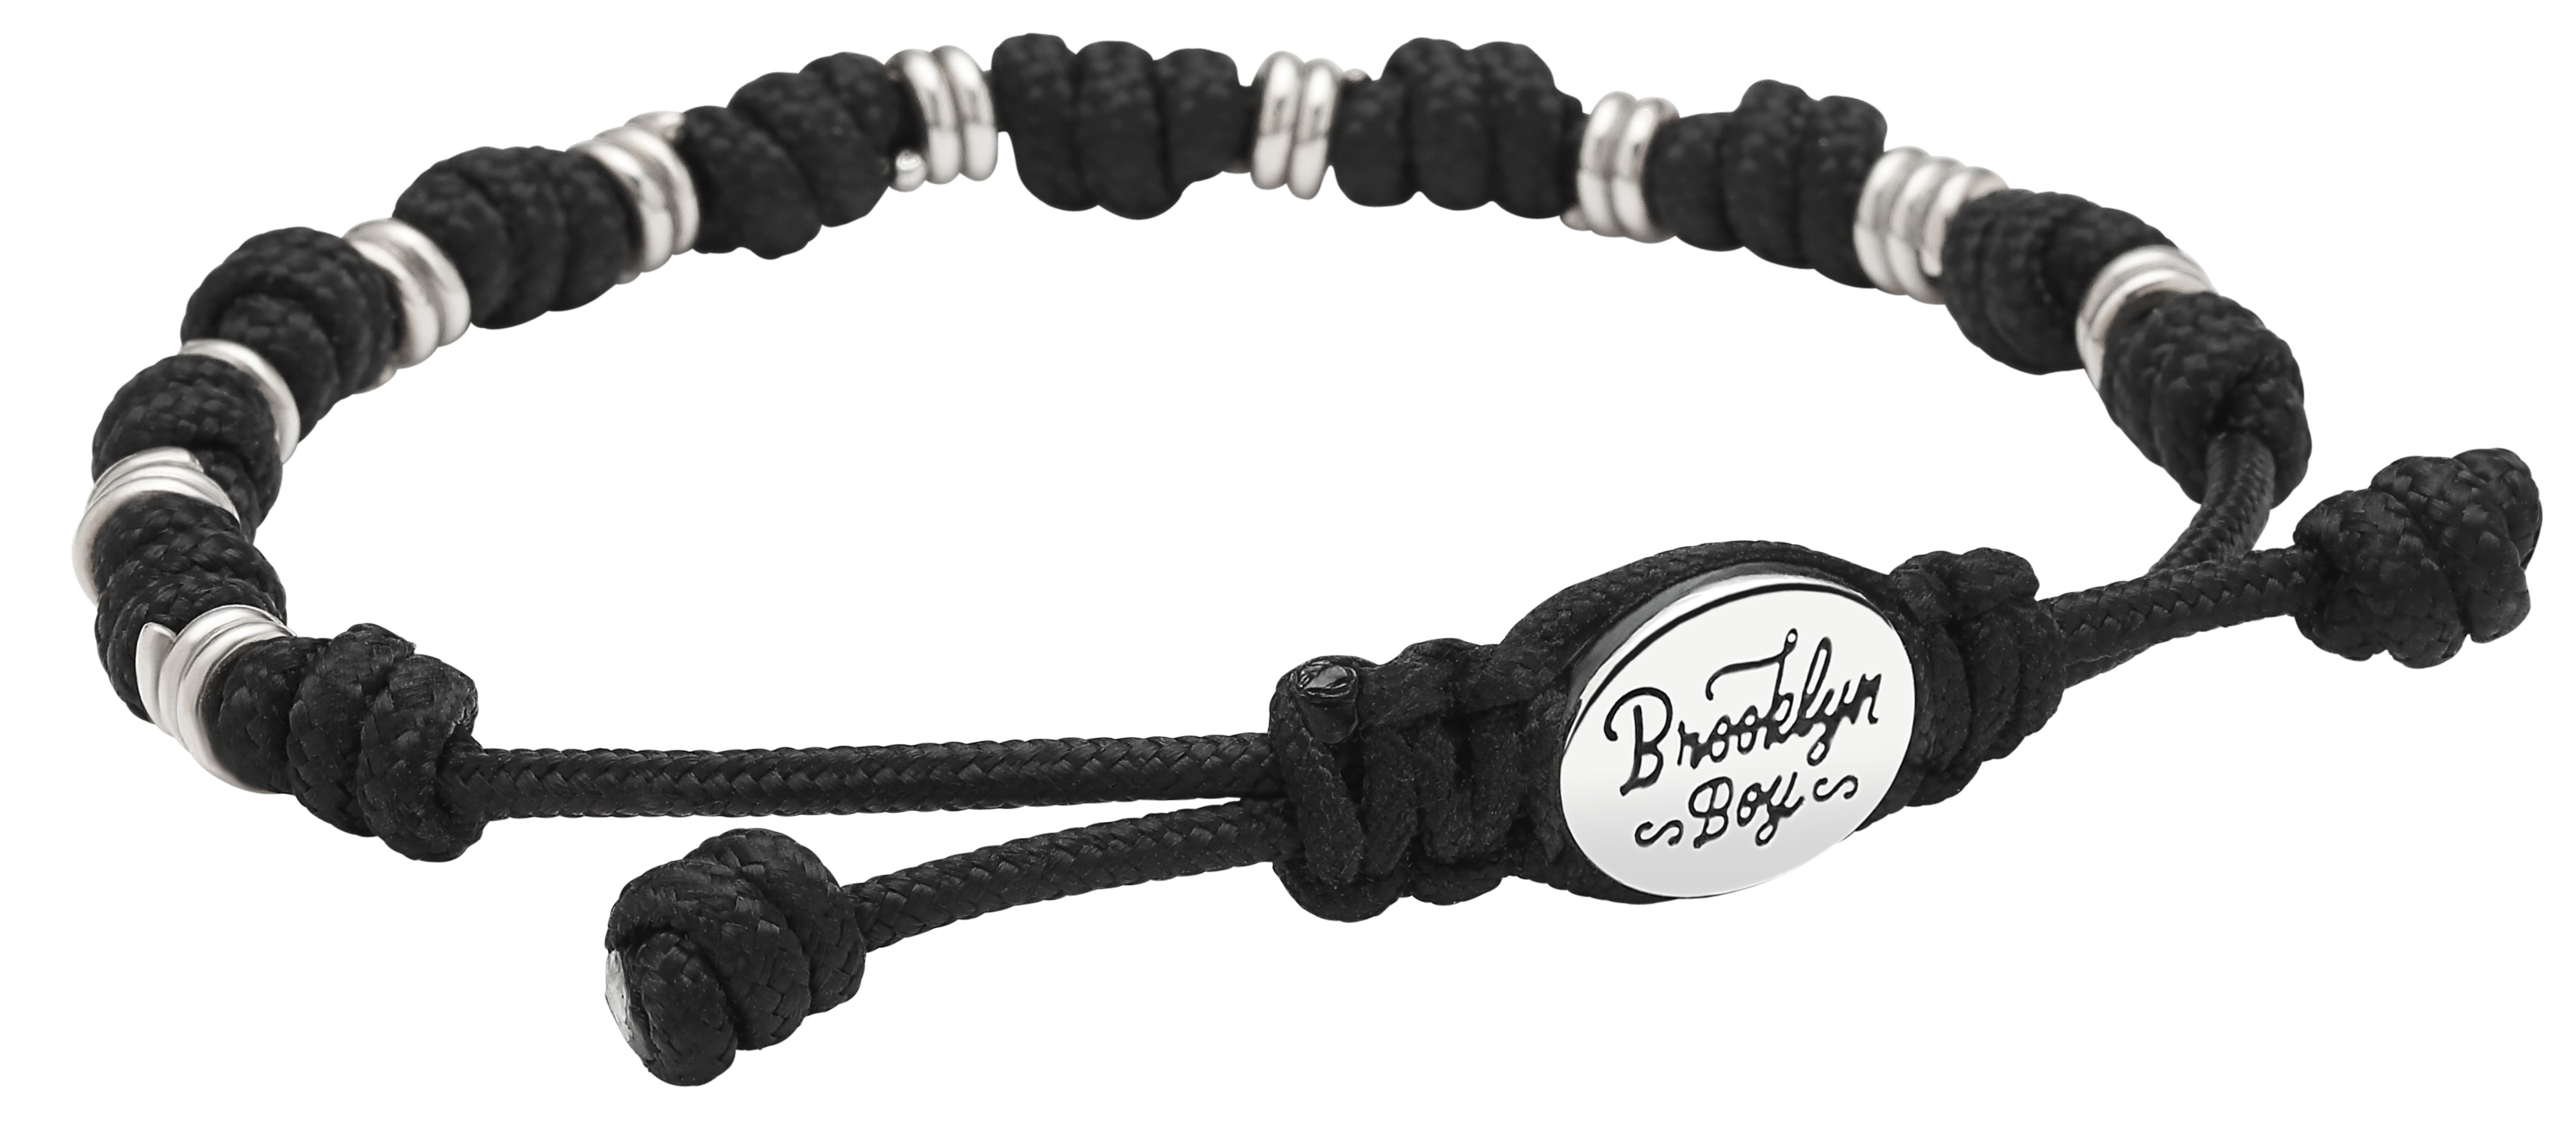 Men's Bracelet w/ Sterling Spiral Beads and Knotted Cord